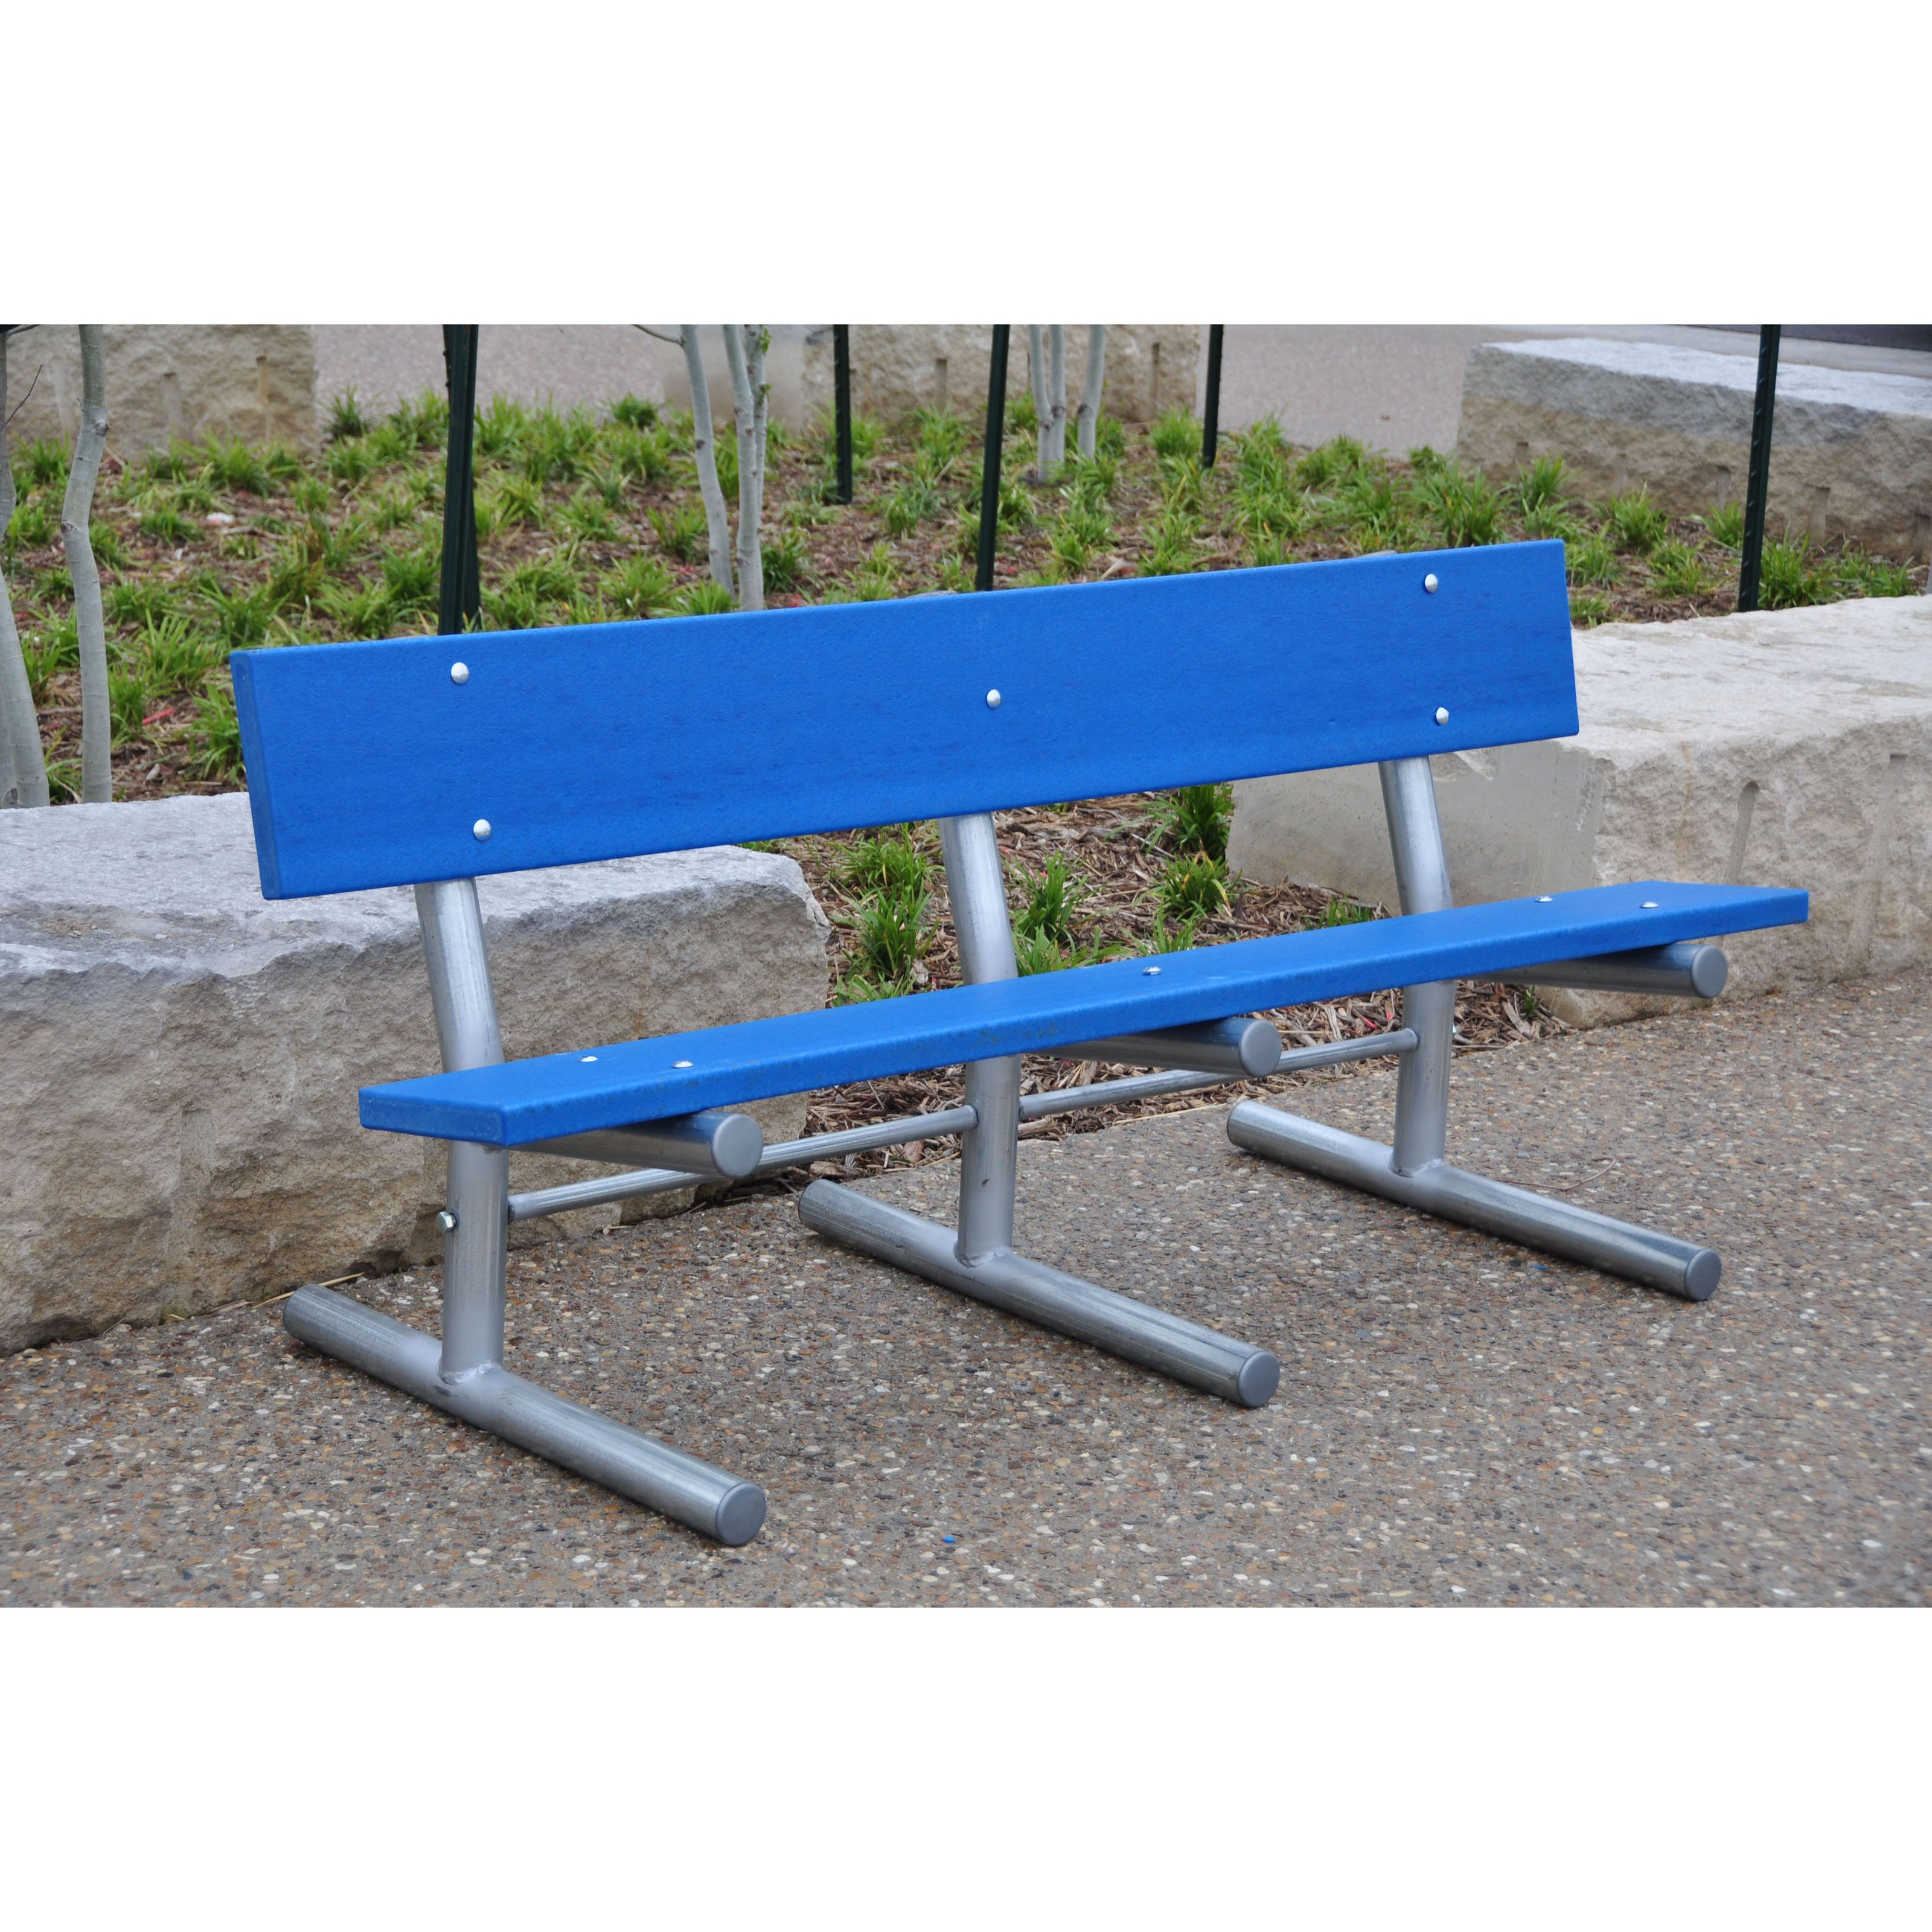 wood benches blog have recycled plastic over bench the advantages eco many friendly park picnic cambridge